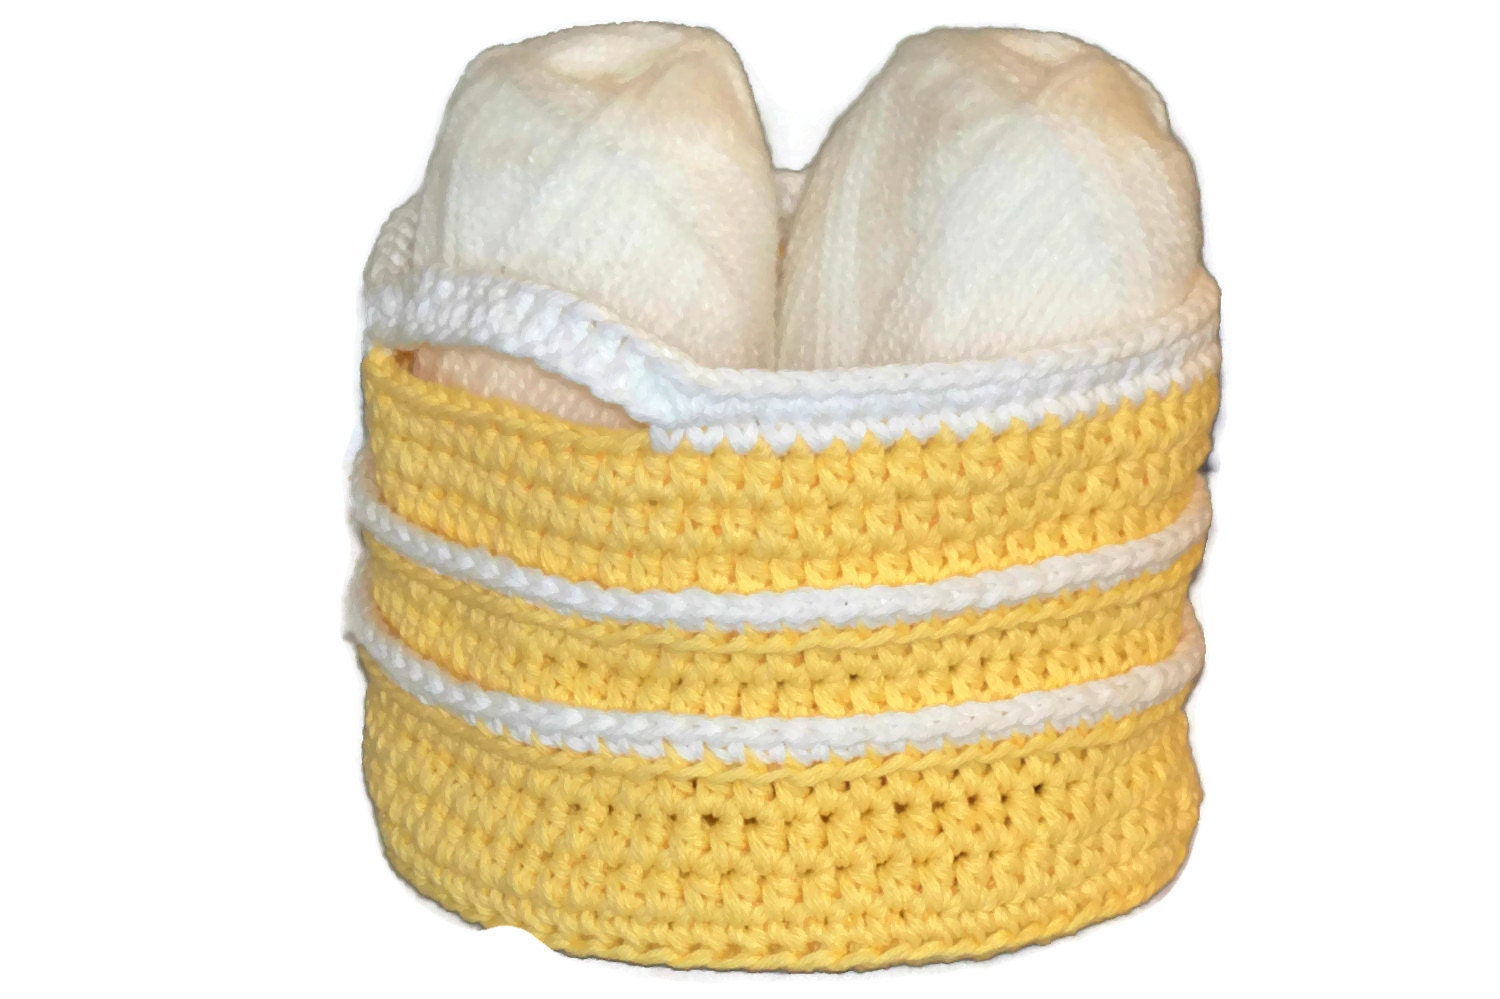 Knitting Basket With Handles : Crochet basket with handles yellow white